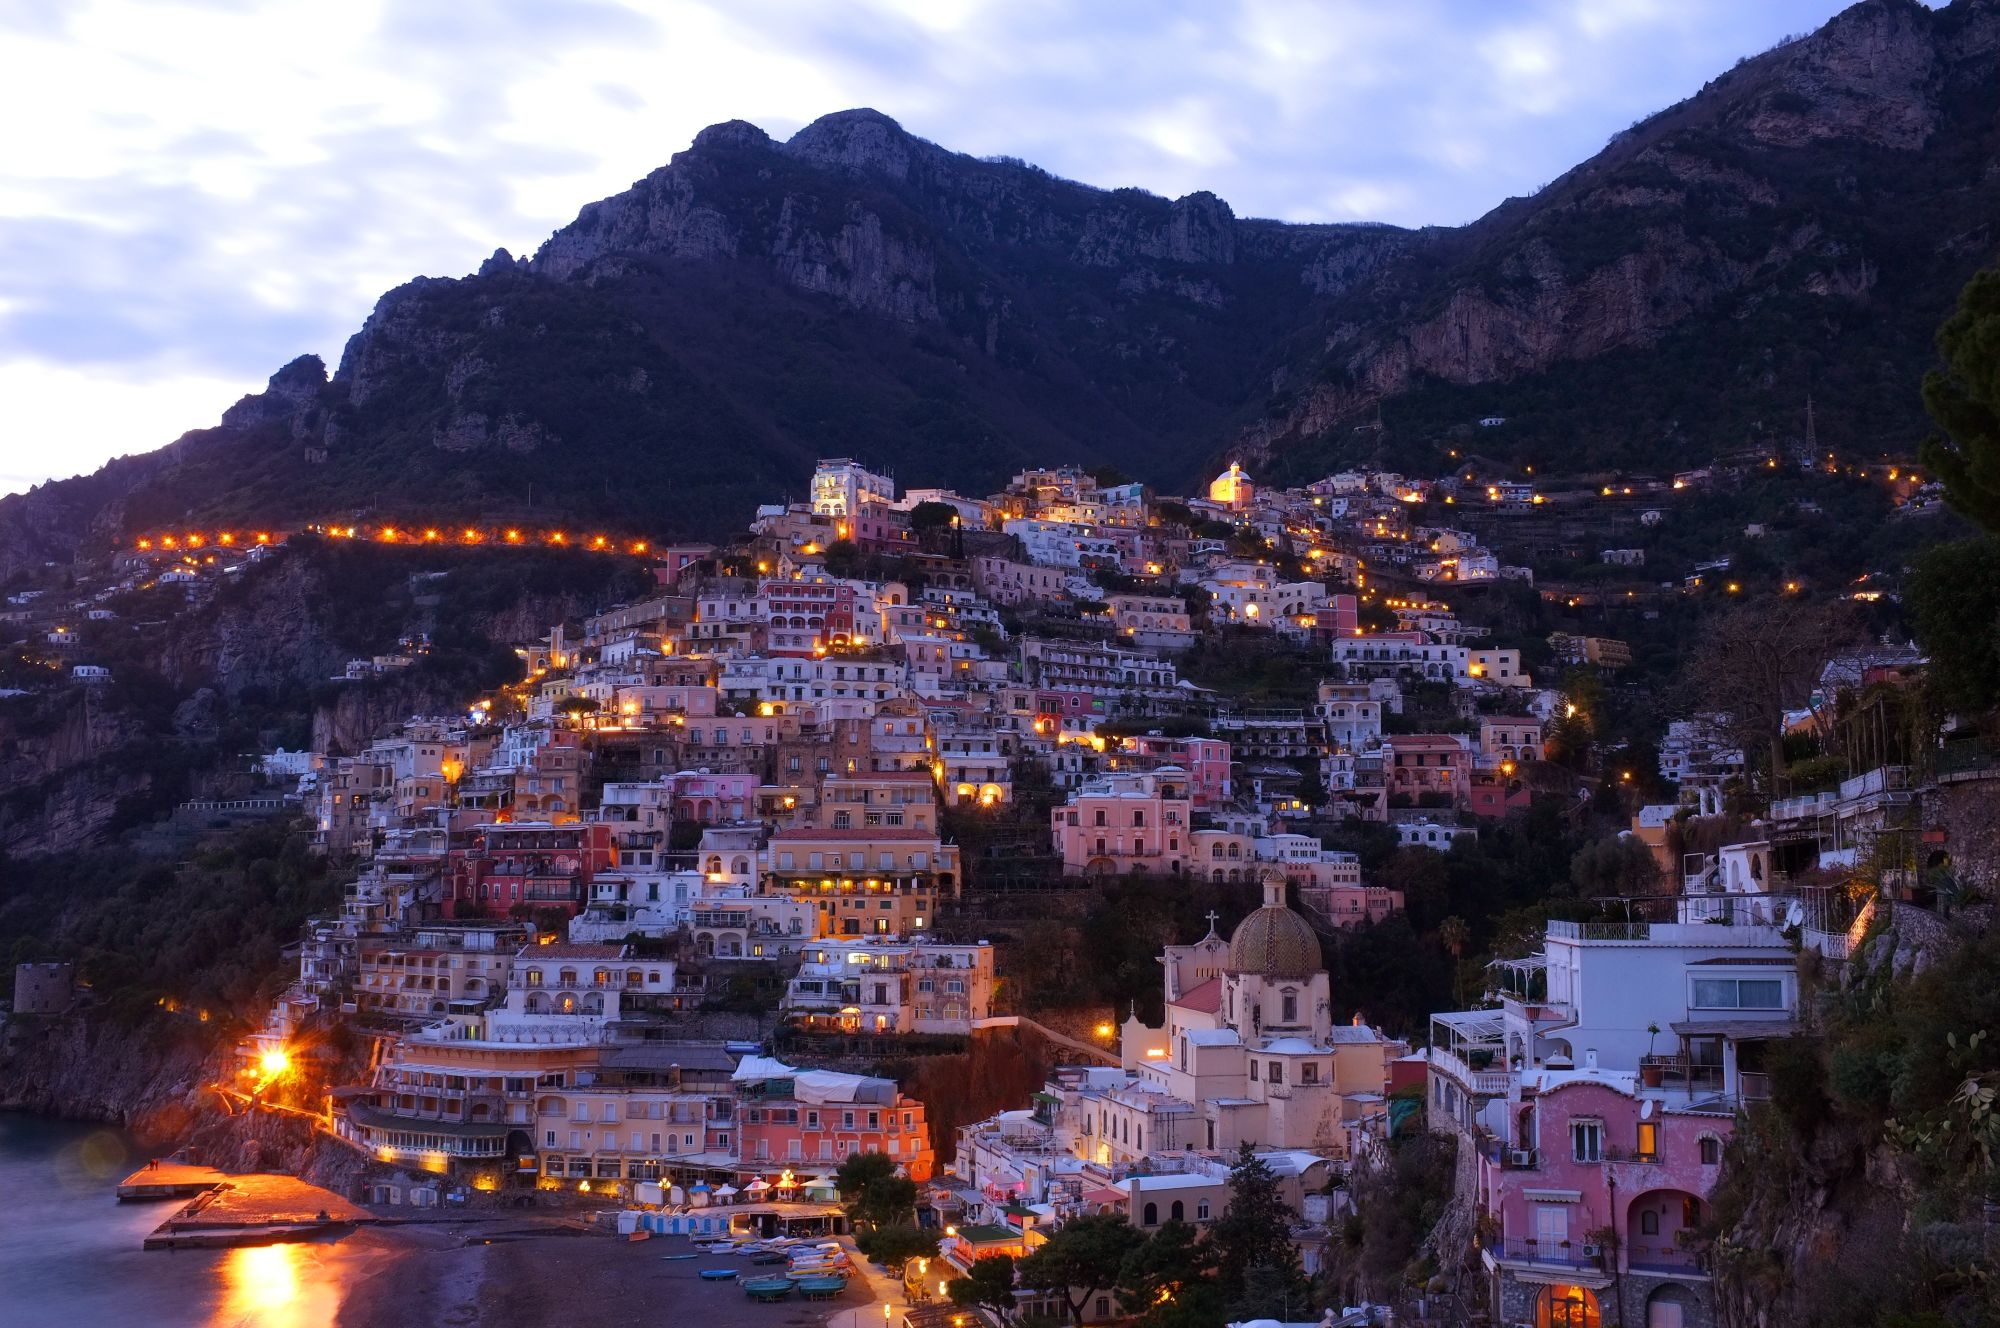 Italian Honeymoon Tours 2019 - 2020 -  Positano, Italy